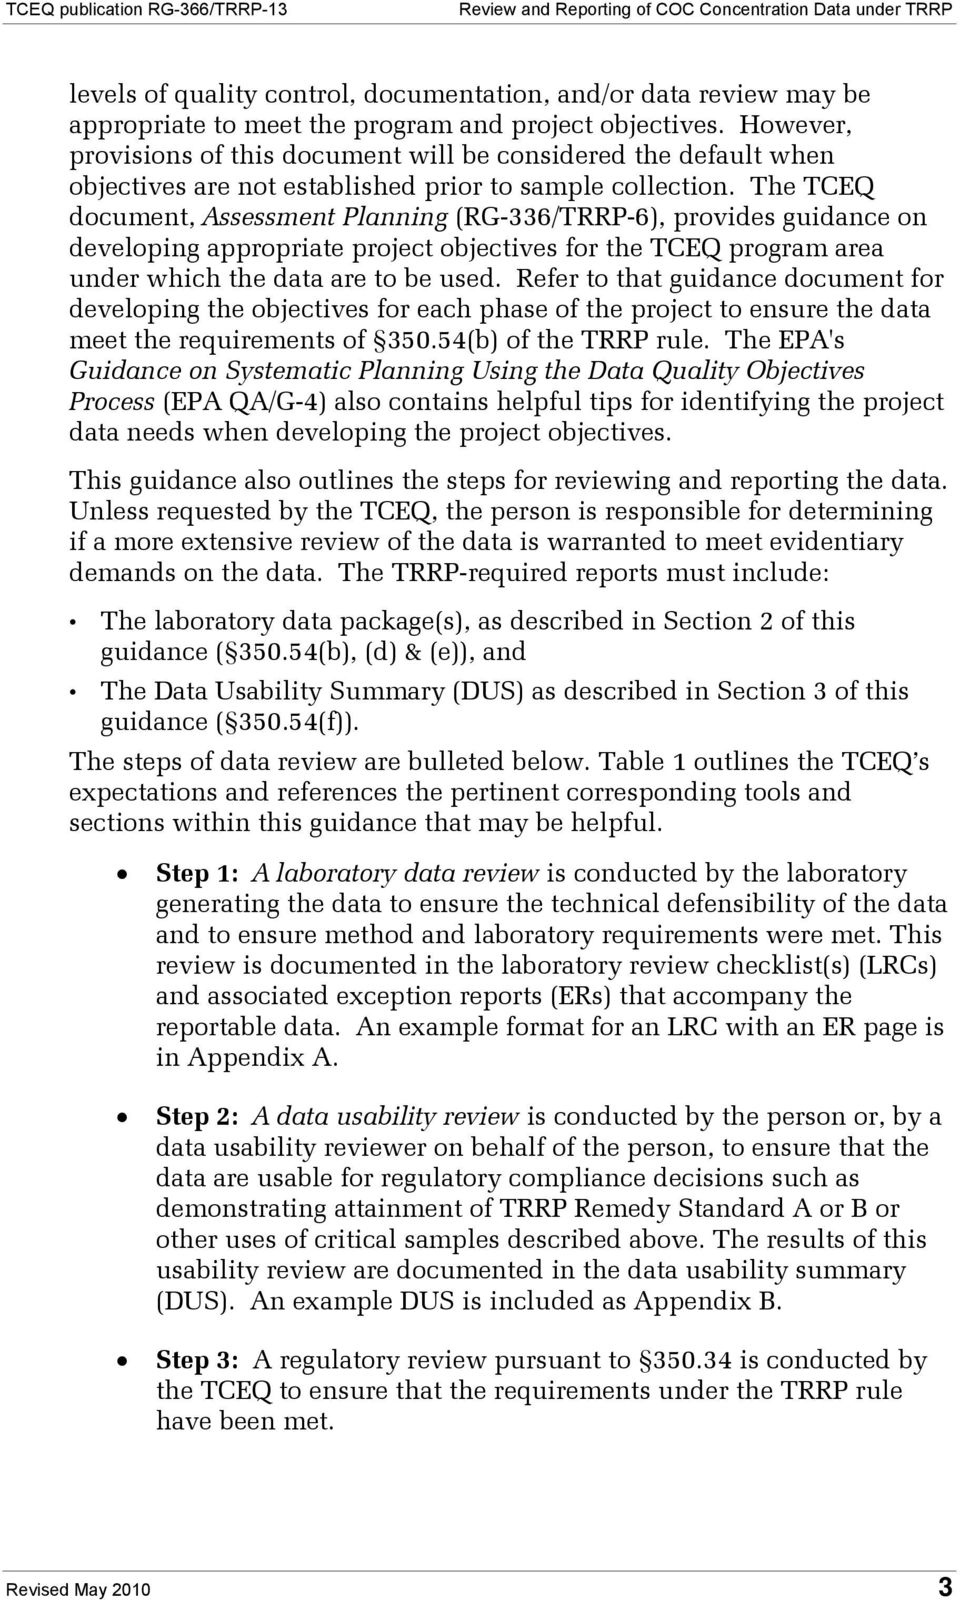 The TCEQ document, Assessment Planning (RG-336/TRRP-6), provides guidance on developing appropriate project objectives for the TCEQ program area under which the data are to be used.